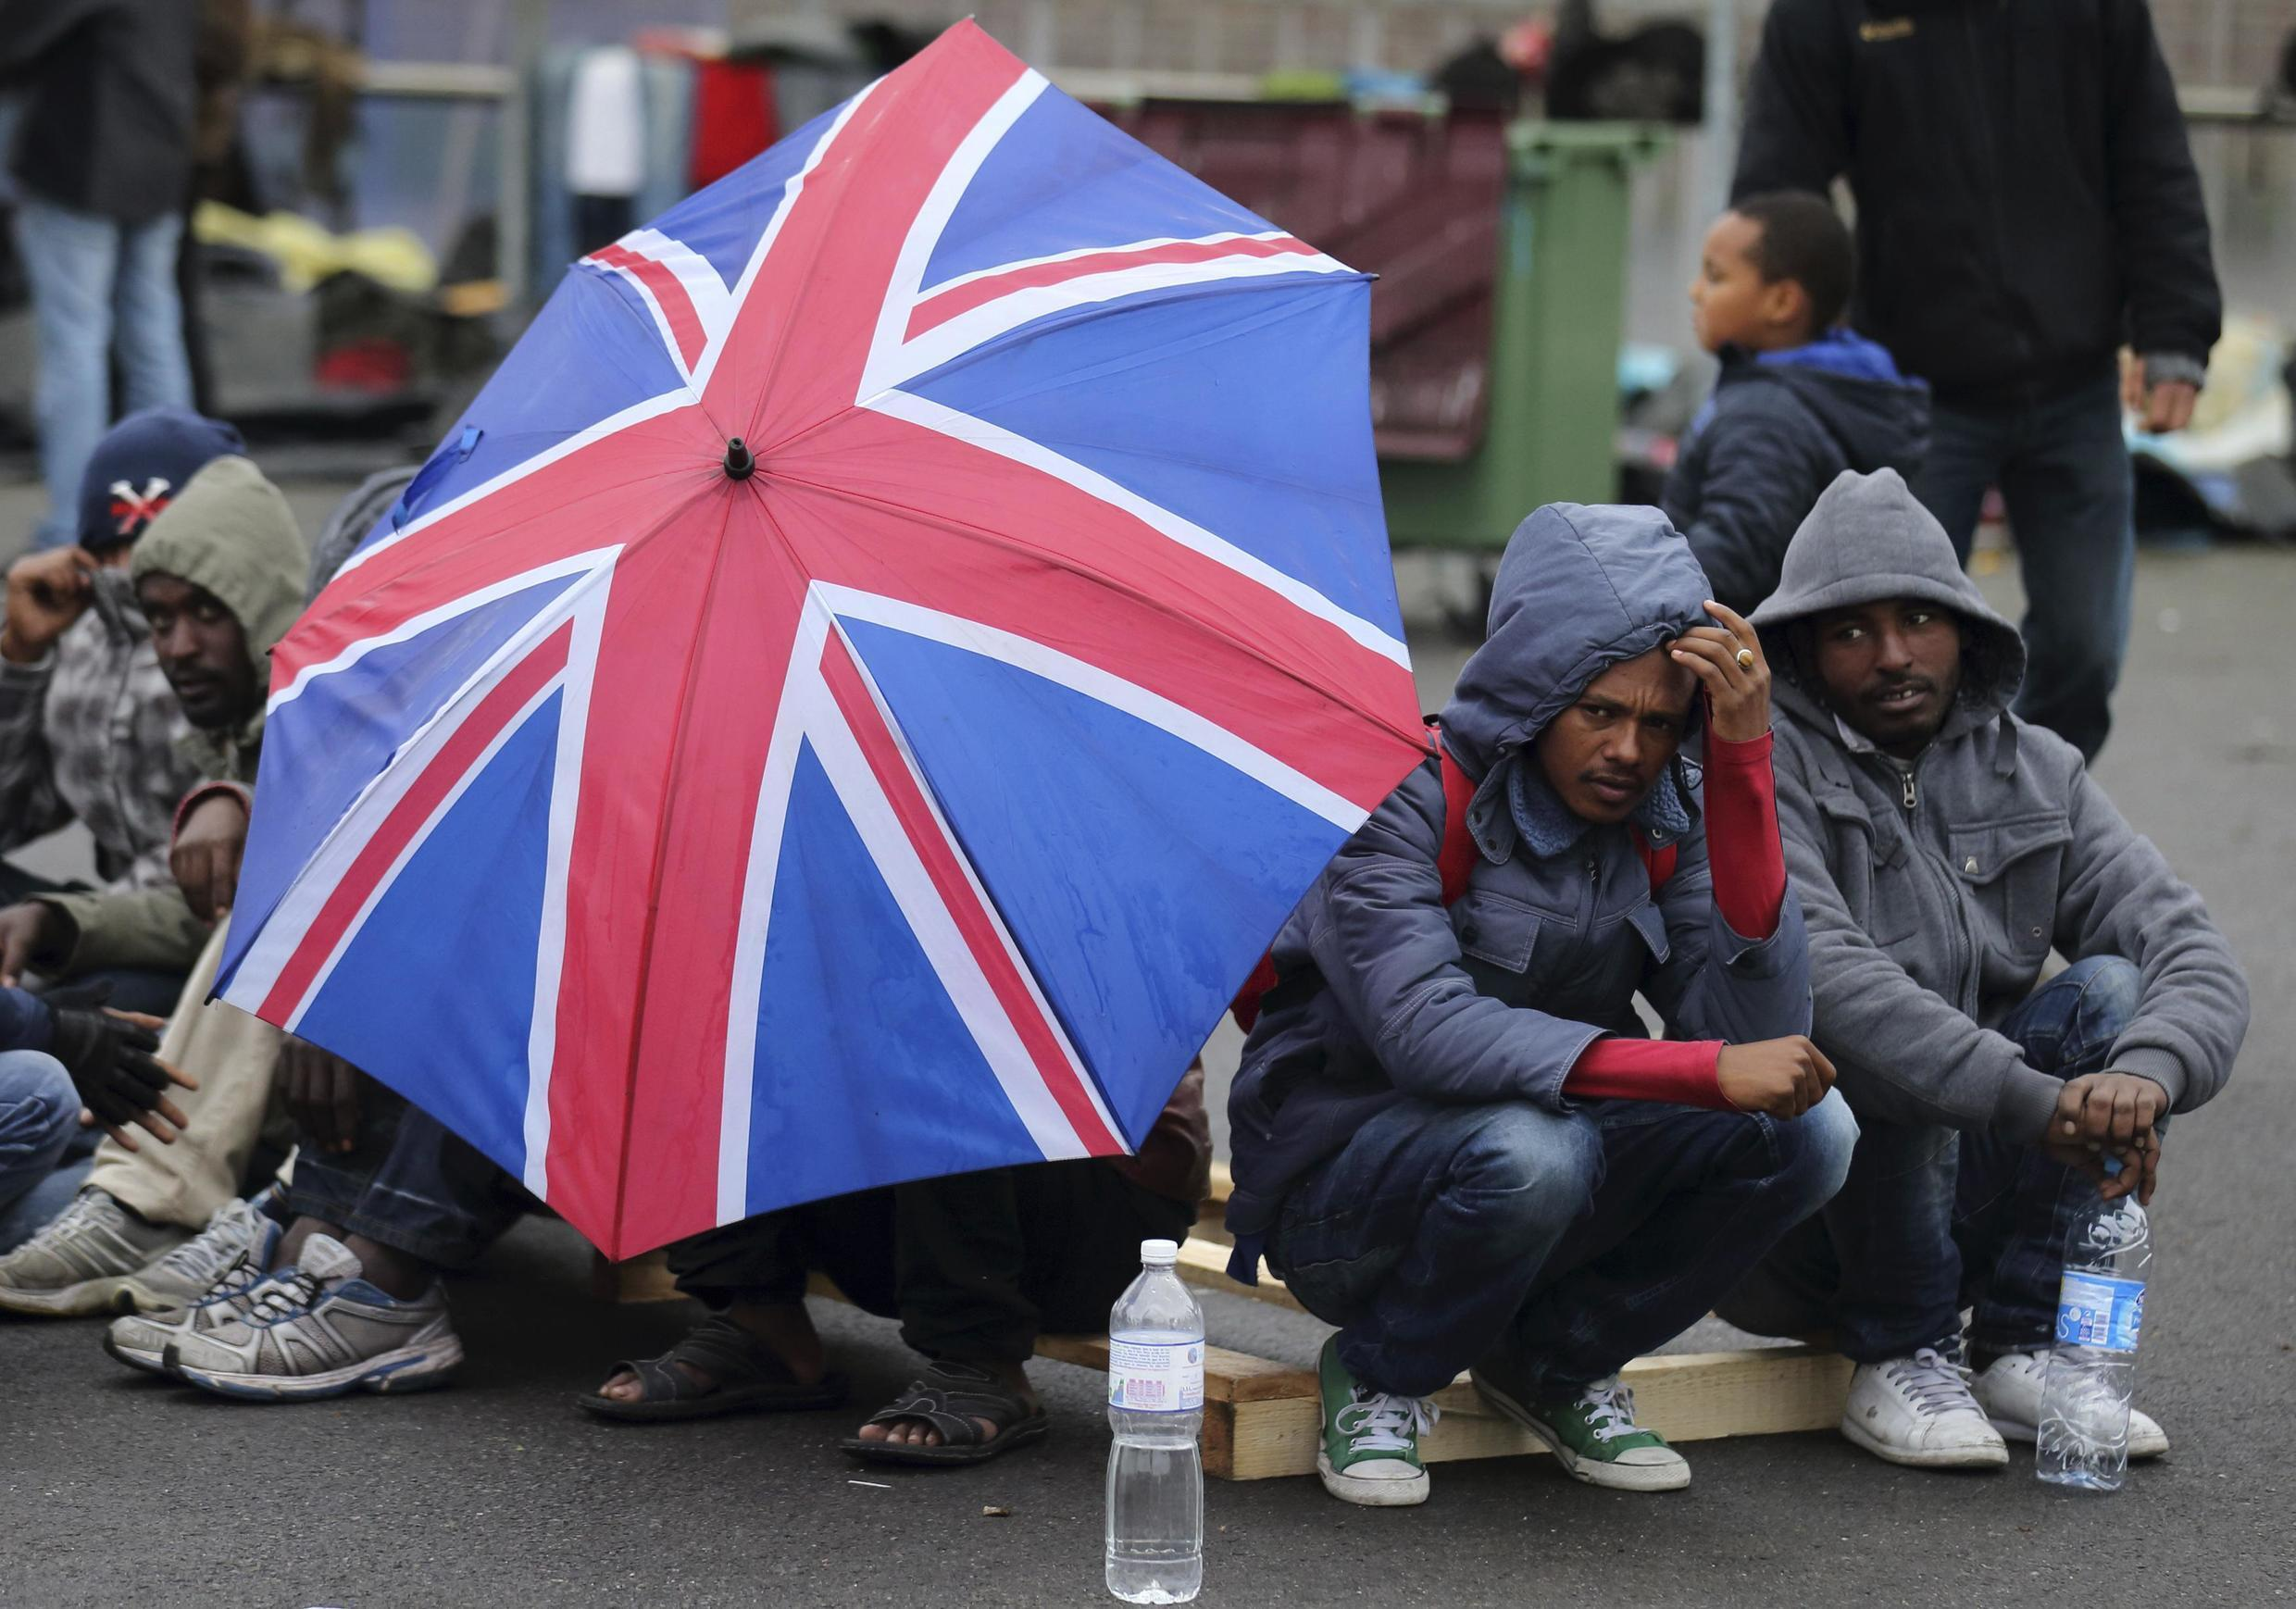 Eritrean migrants in Calais hoping to cross the Channel.